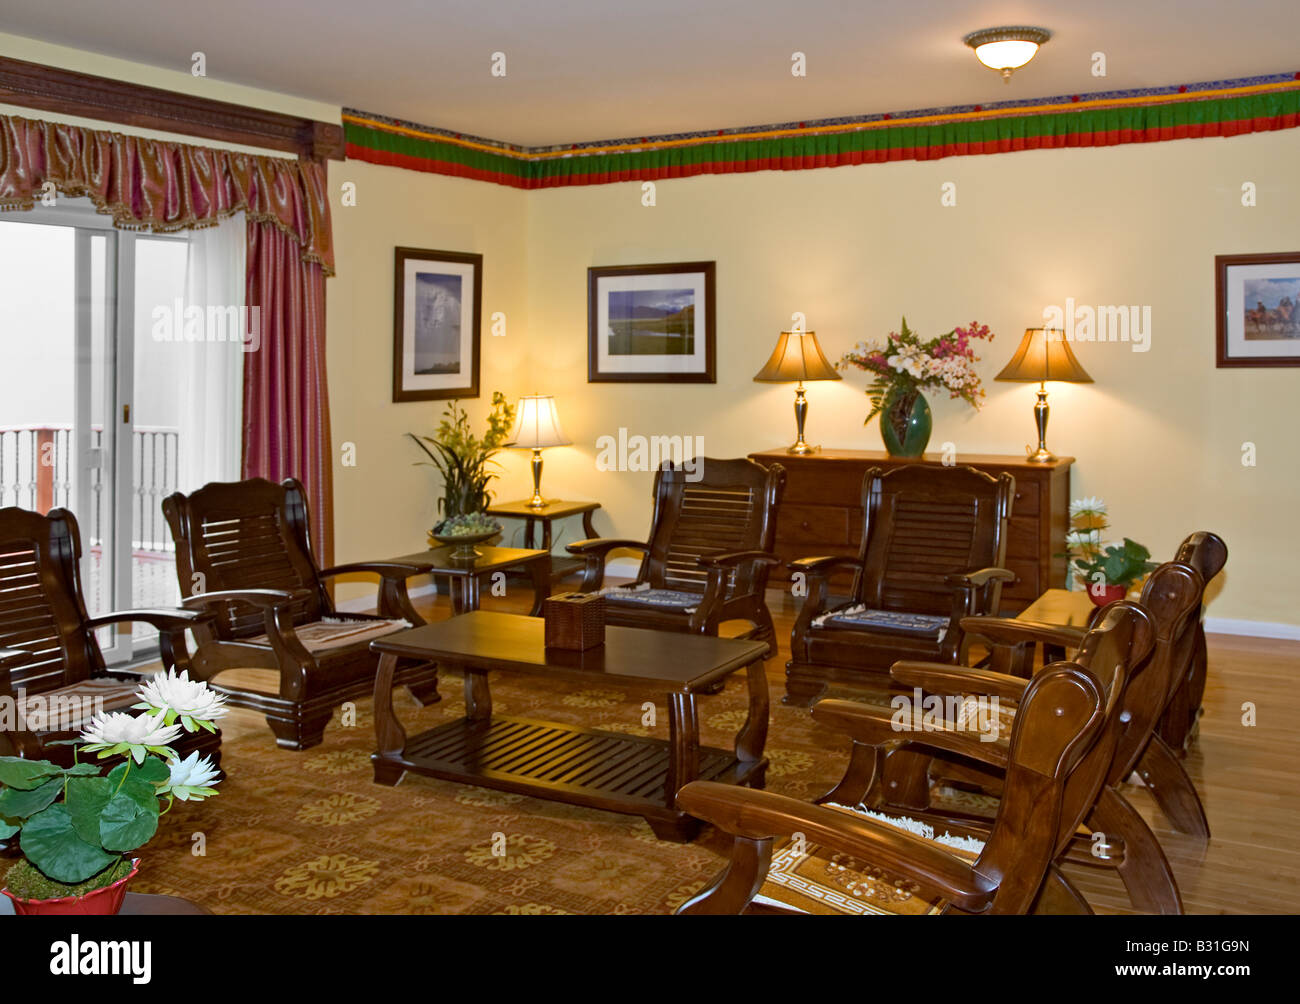 Merveilleux SITTING ROOM Of The 14th DALAI LAMA At KUMBUM CHAMTSE LING ...